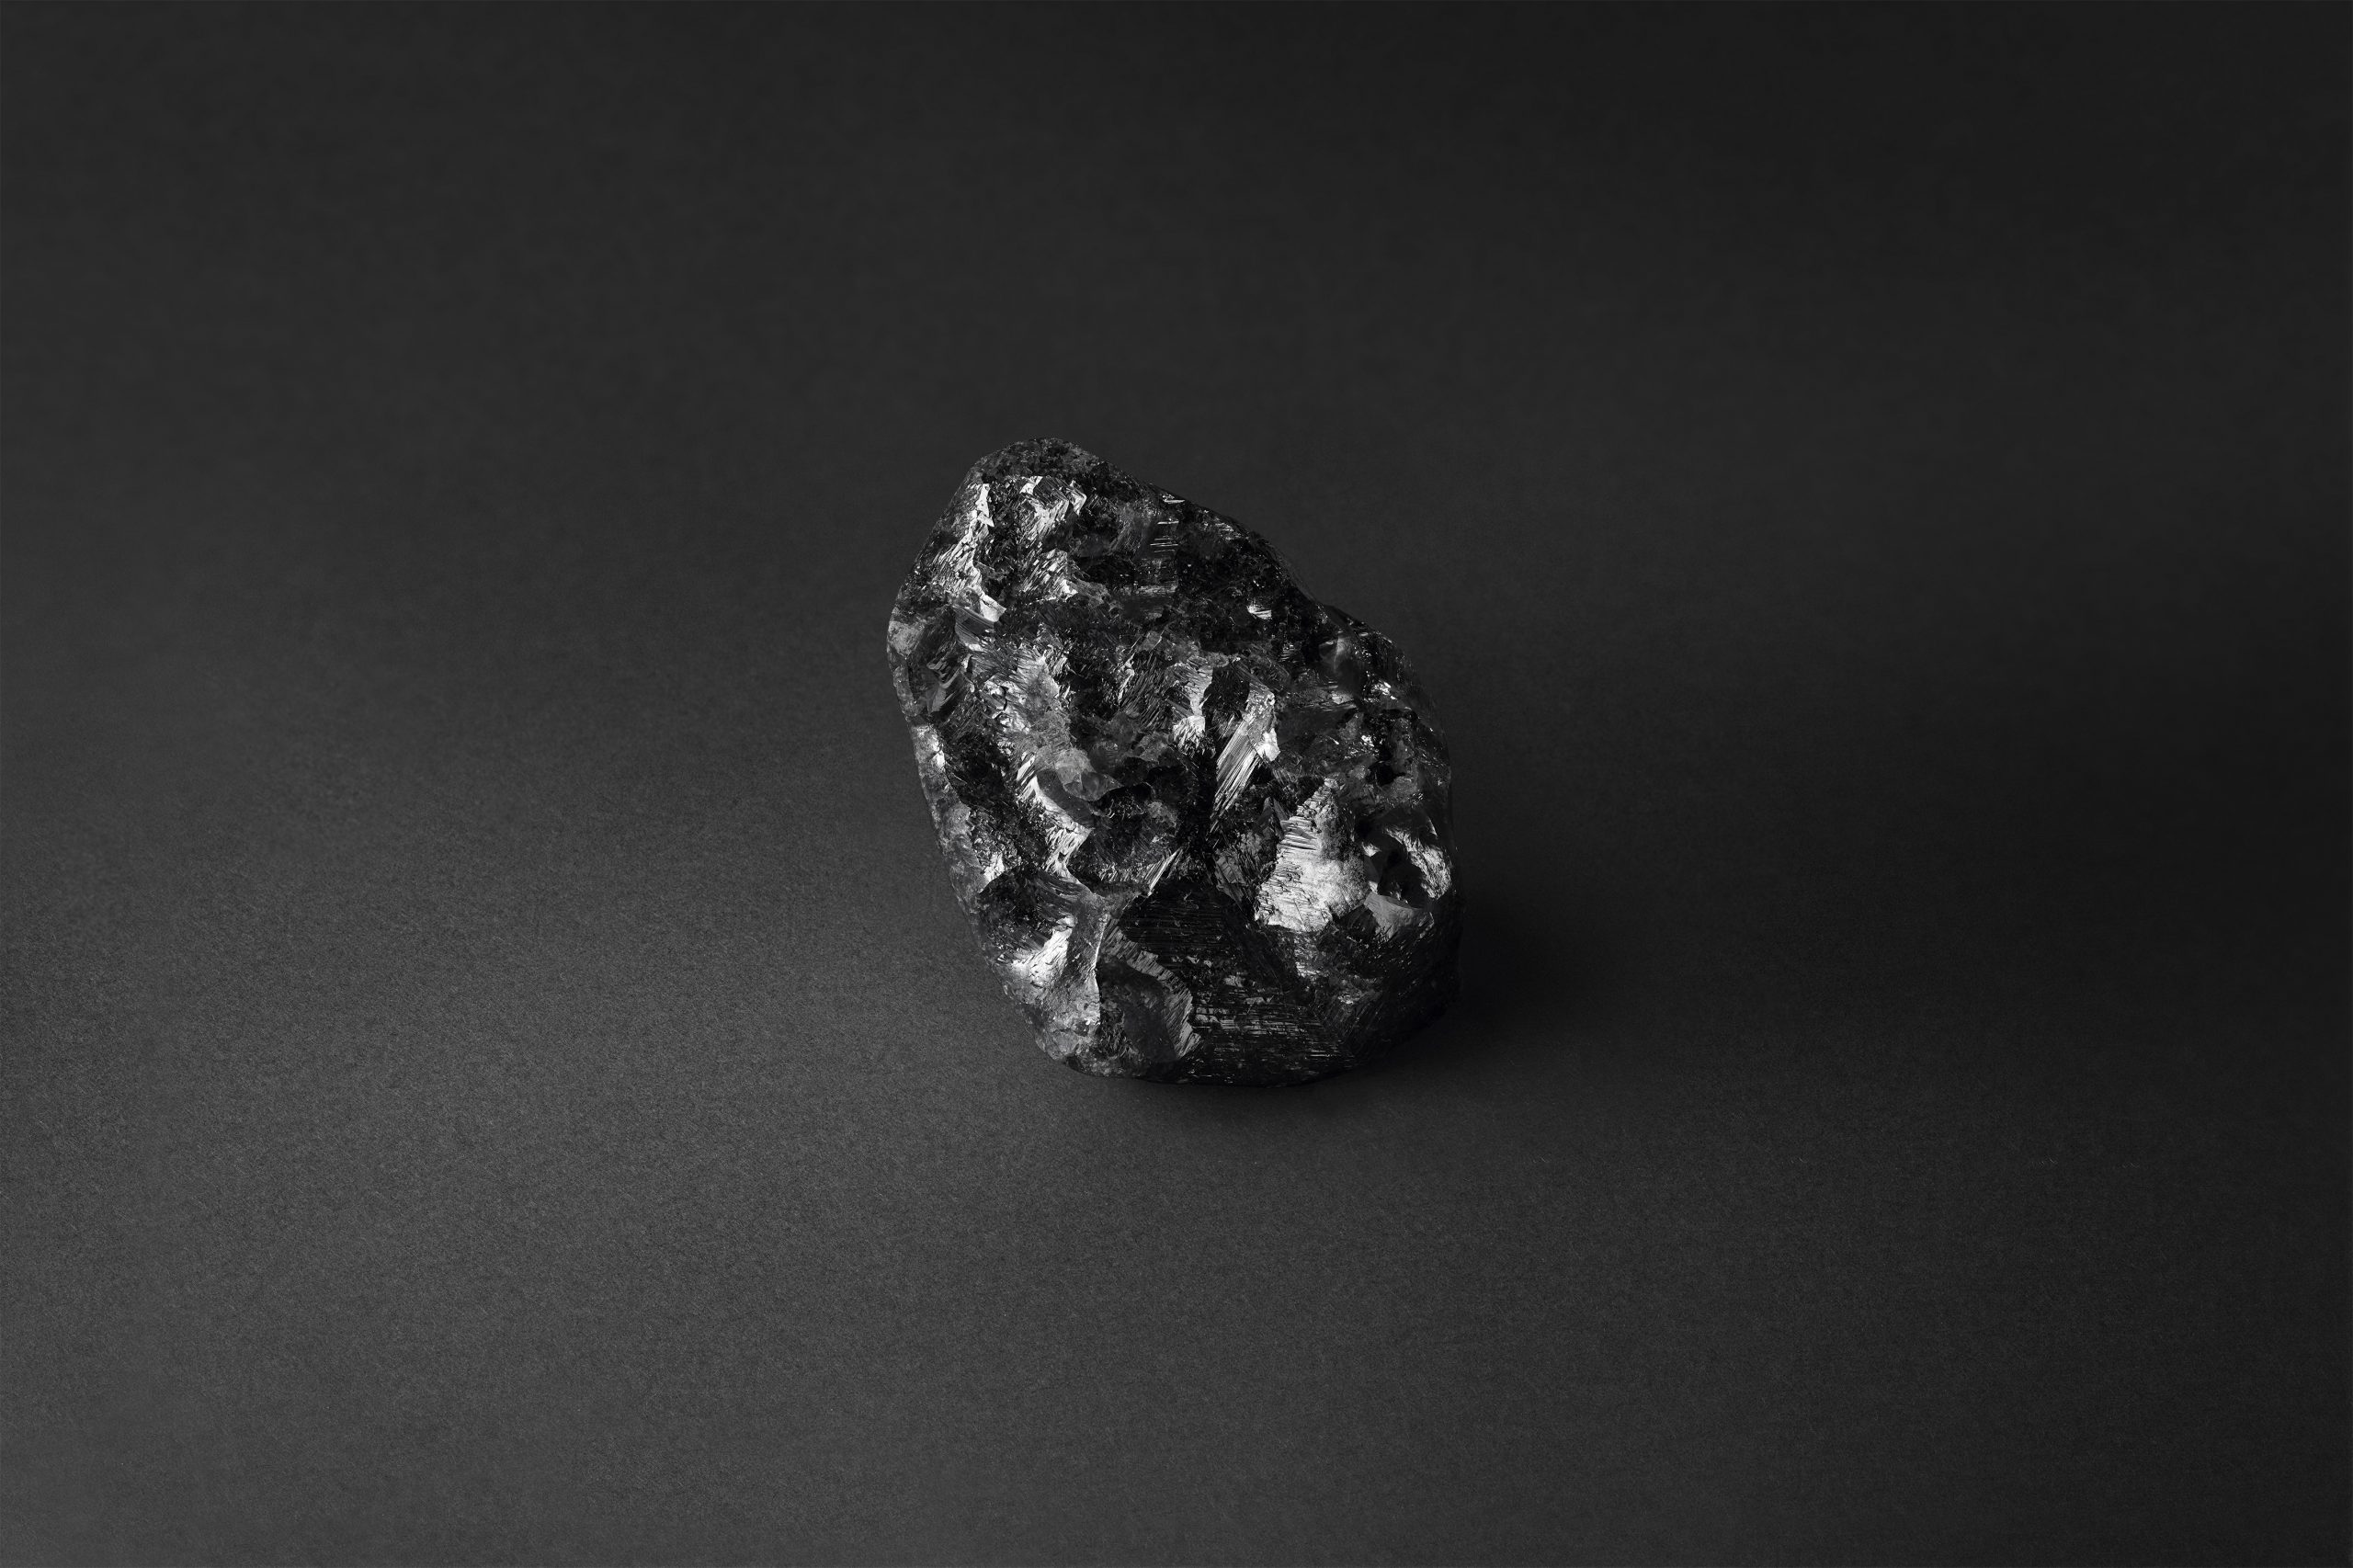 Louis Vuitton has entered into a partnership with Canadian corporation Lucara to make jewellery from the second largest rough diamond ever mined, in a sign of its growing ambitions in the high-end jewellery market.